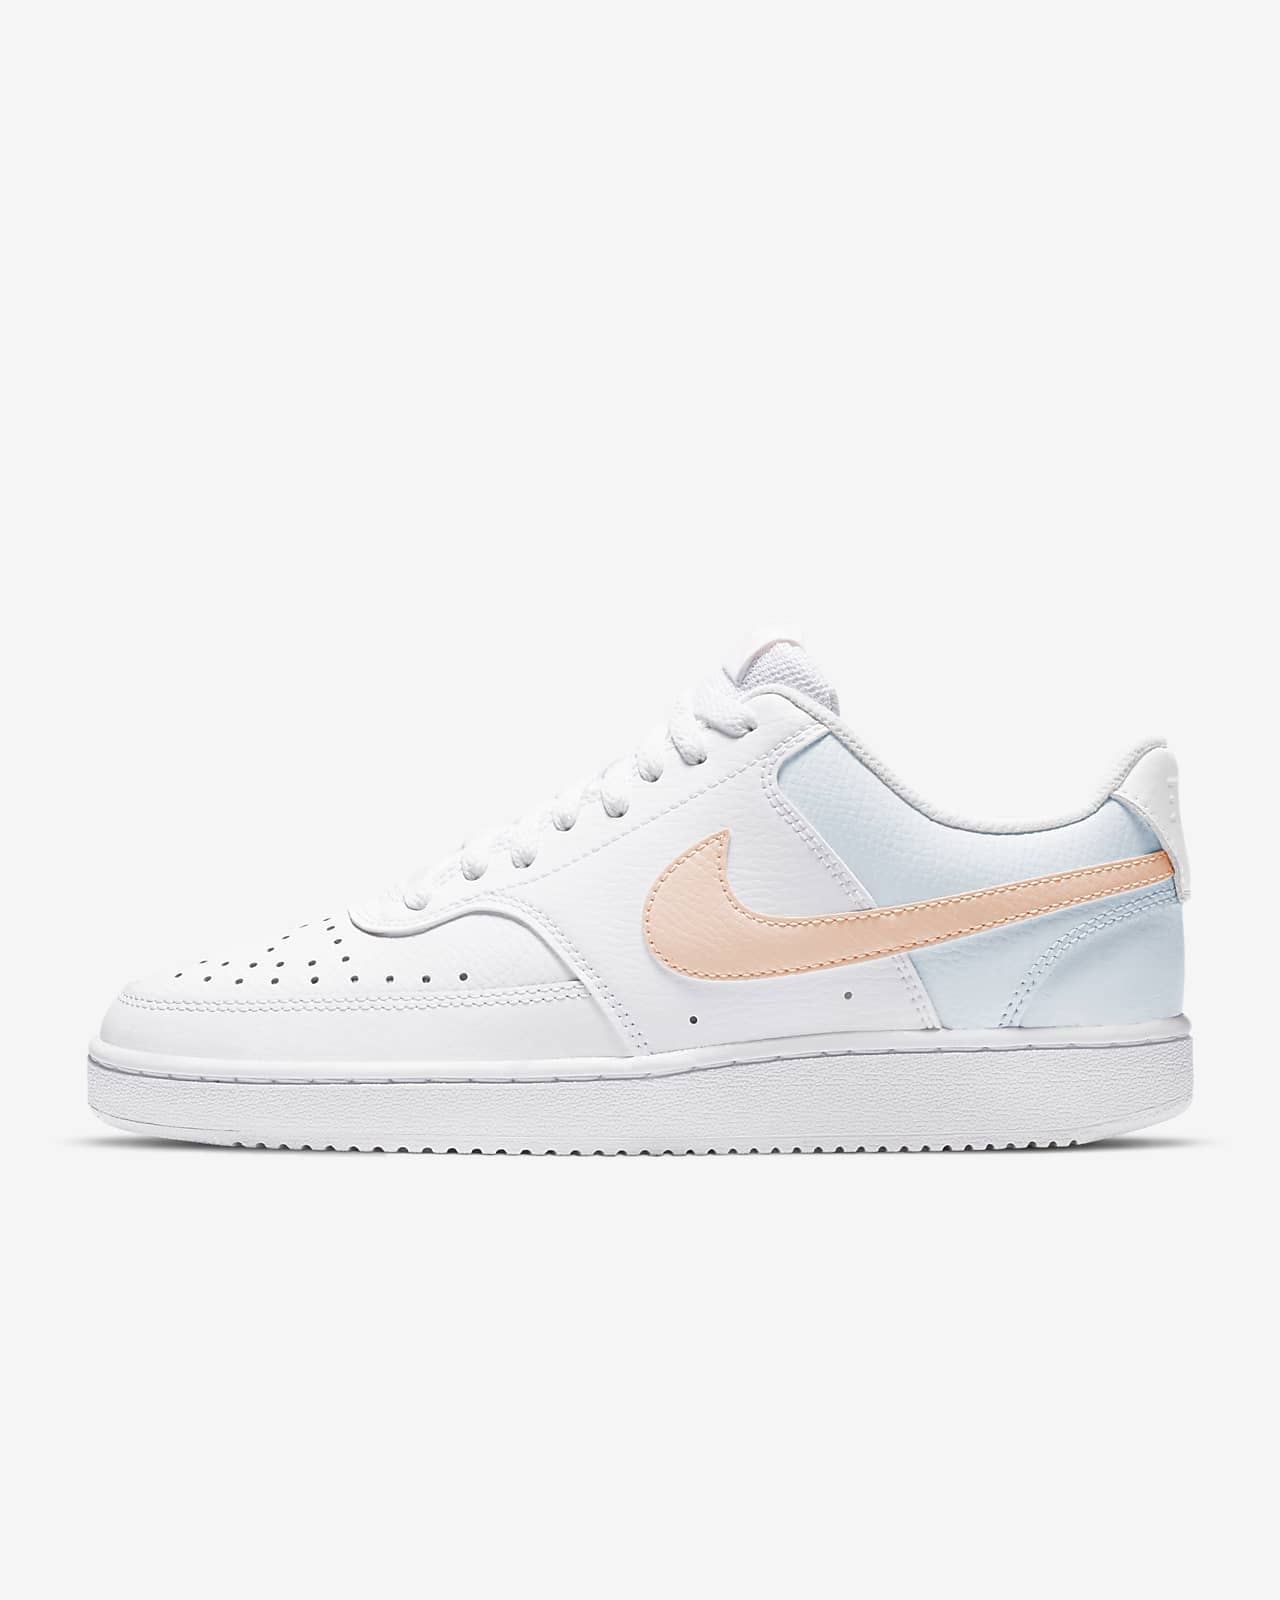 Chaussure Nike Court Vision Low pour Femme